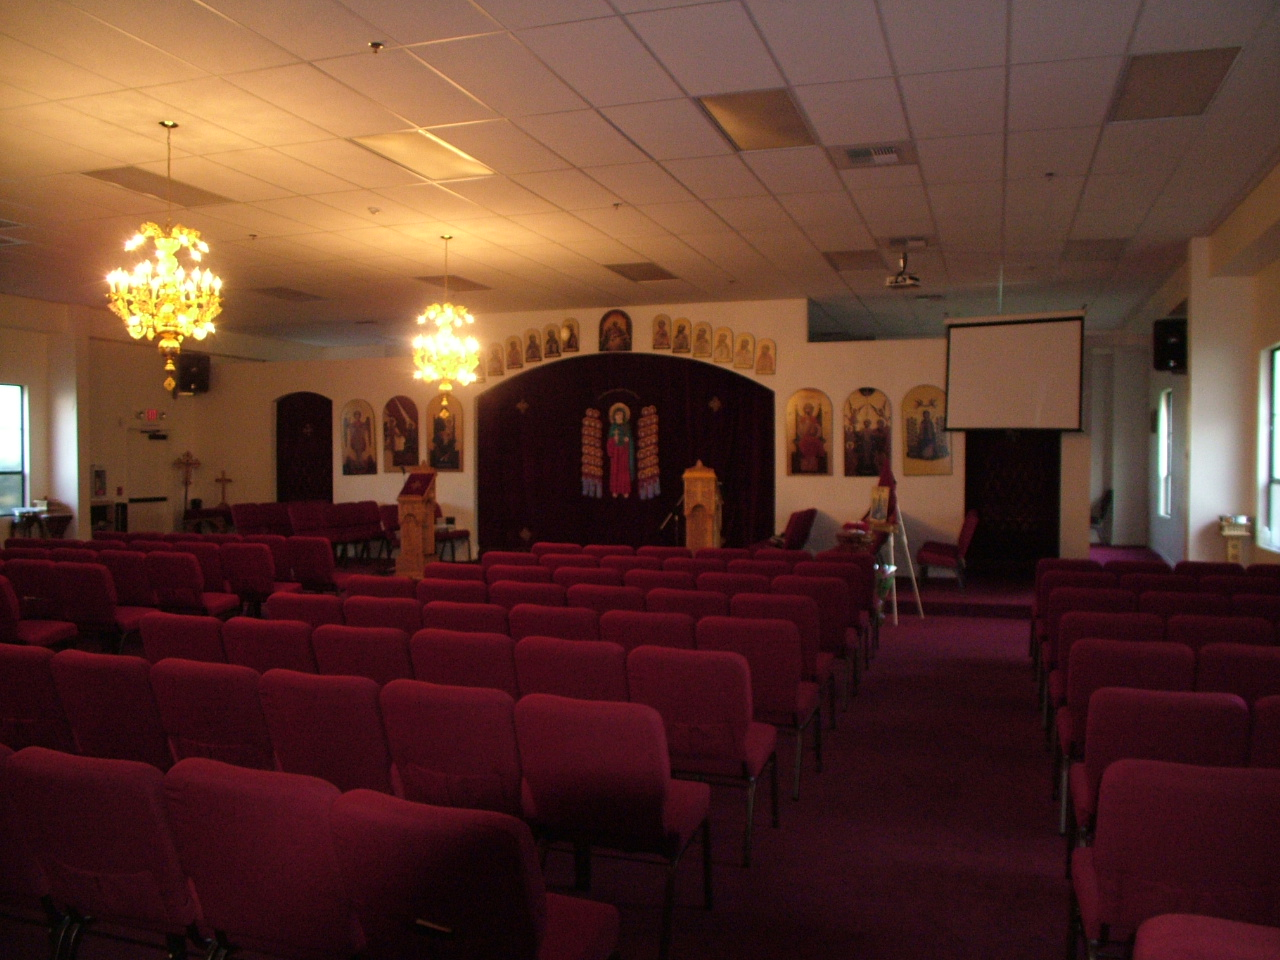 10-21-09websitephotos 020